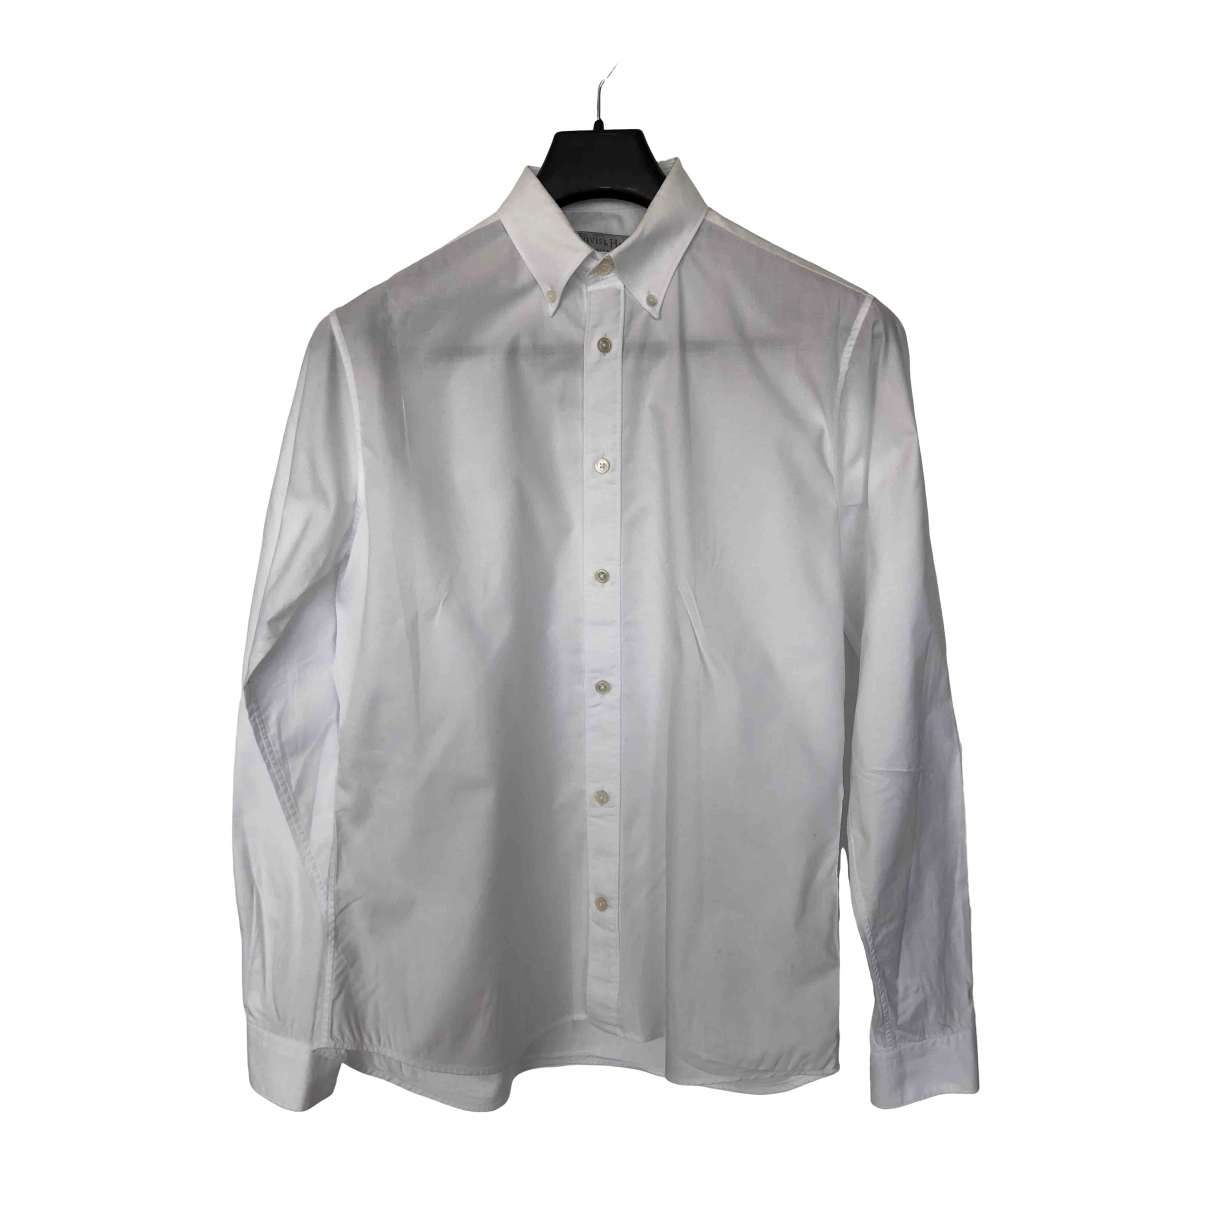 Gieves & Hawkes \N White Cotton Shirts for Men S International